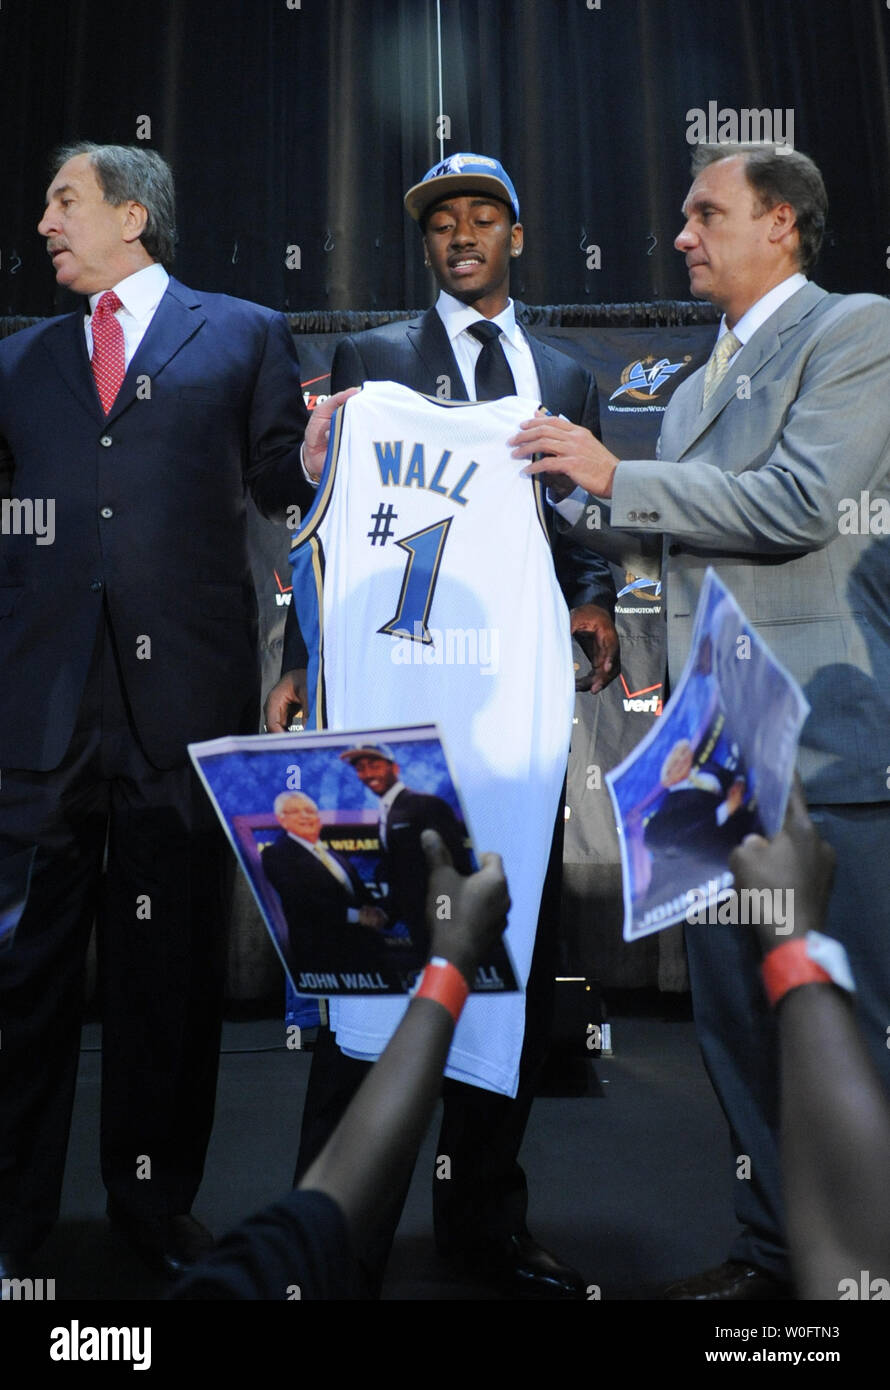 John Wall (C), the NBA #1 draft pick by ...